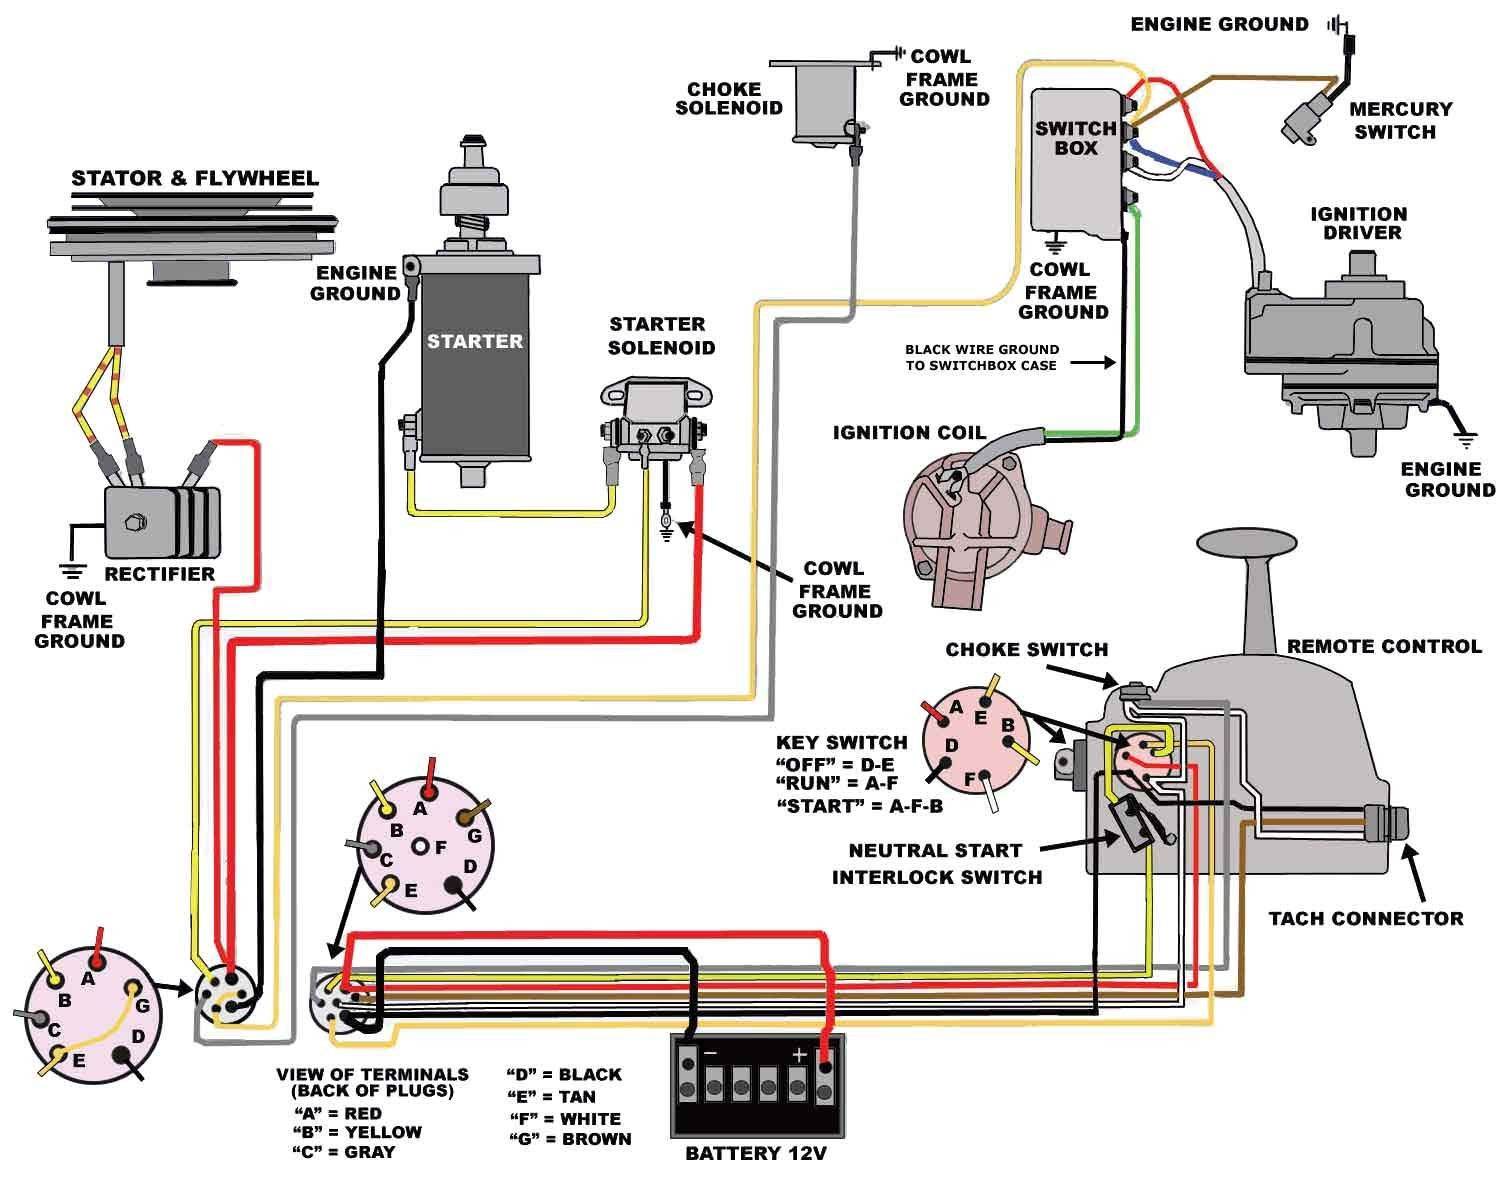 Mercury Marine Ignition Switch Wiring Diagram - Library Of Wiring ...